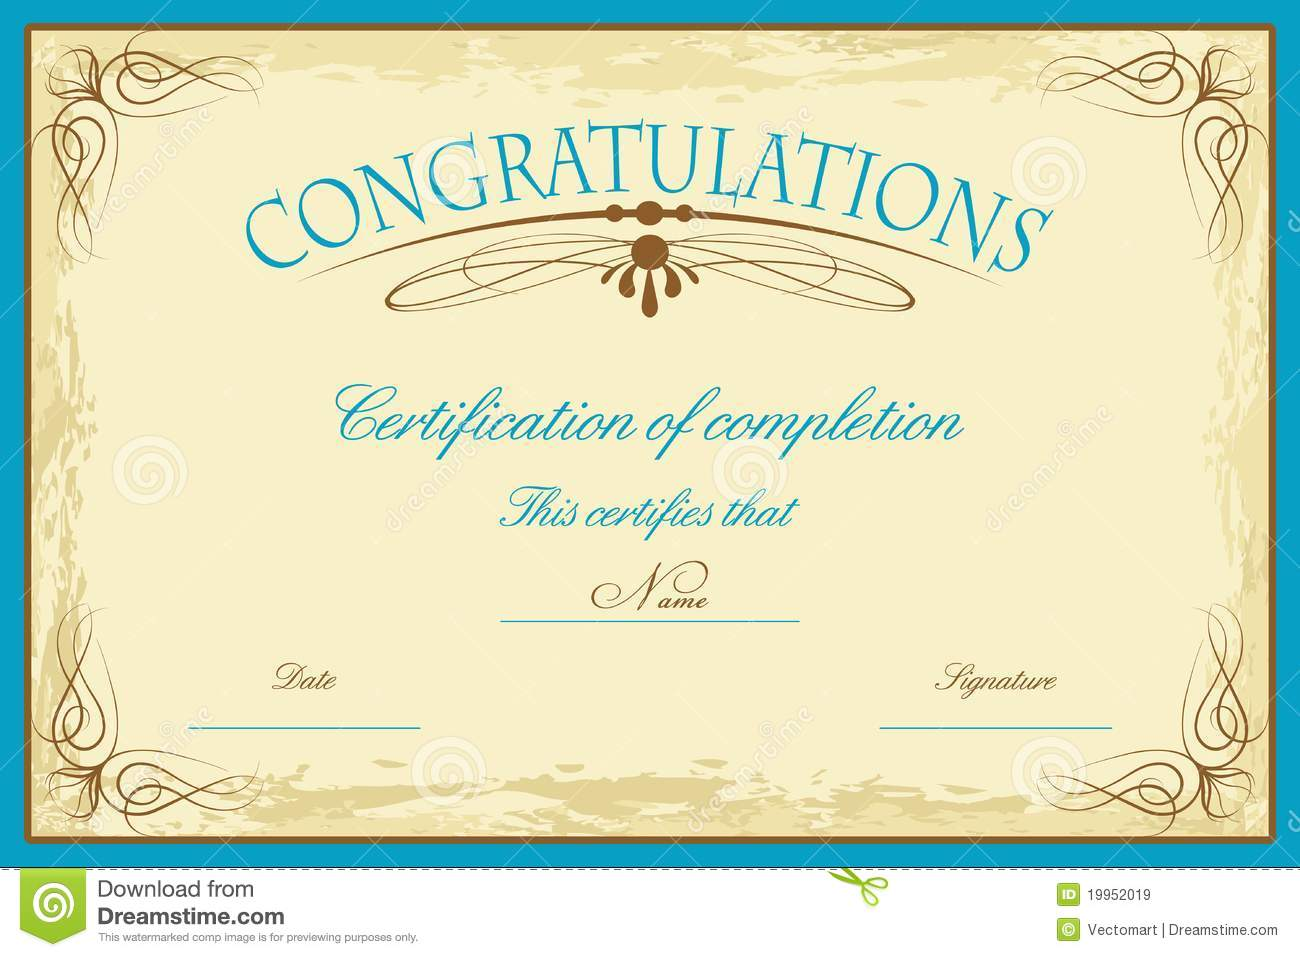 Free Download Certificate Templates free paystub templates – Download Certificate Templates